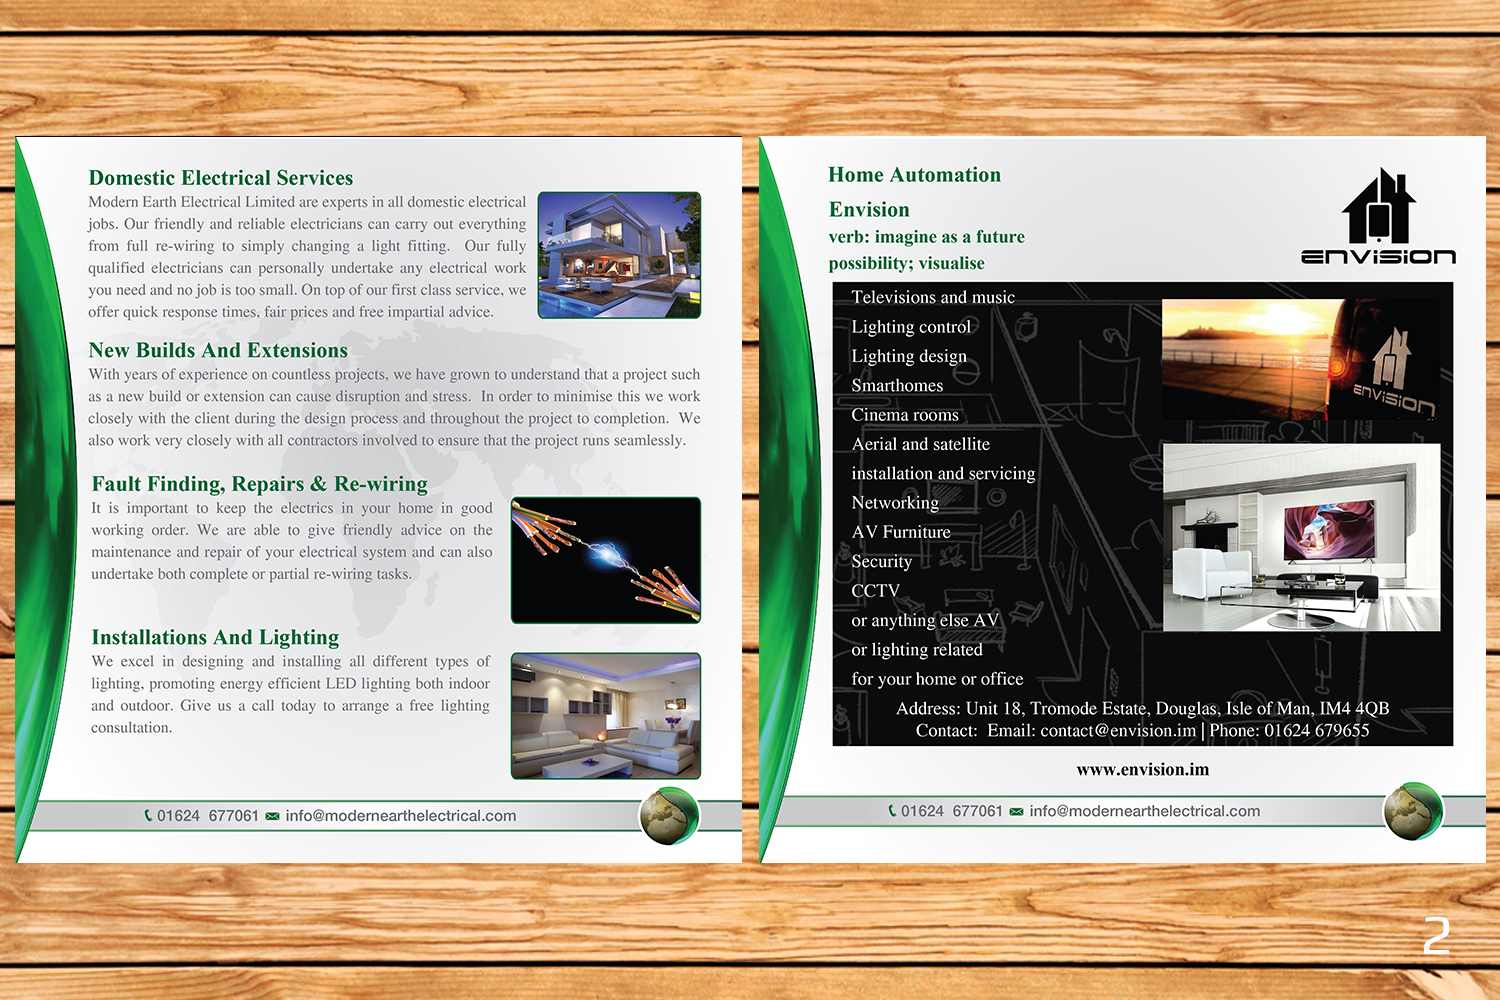 Elegant Modern Electrical Brochure Design For A Company By And Home Automation Wiring Designanddevelopment This Project 13038907